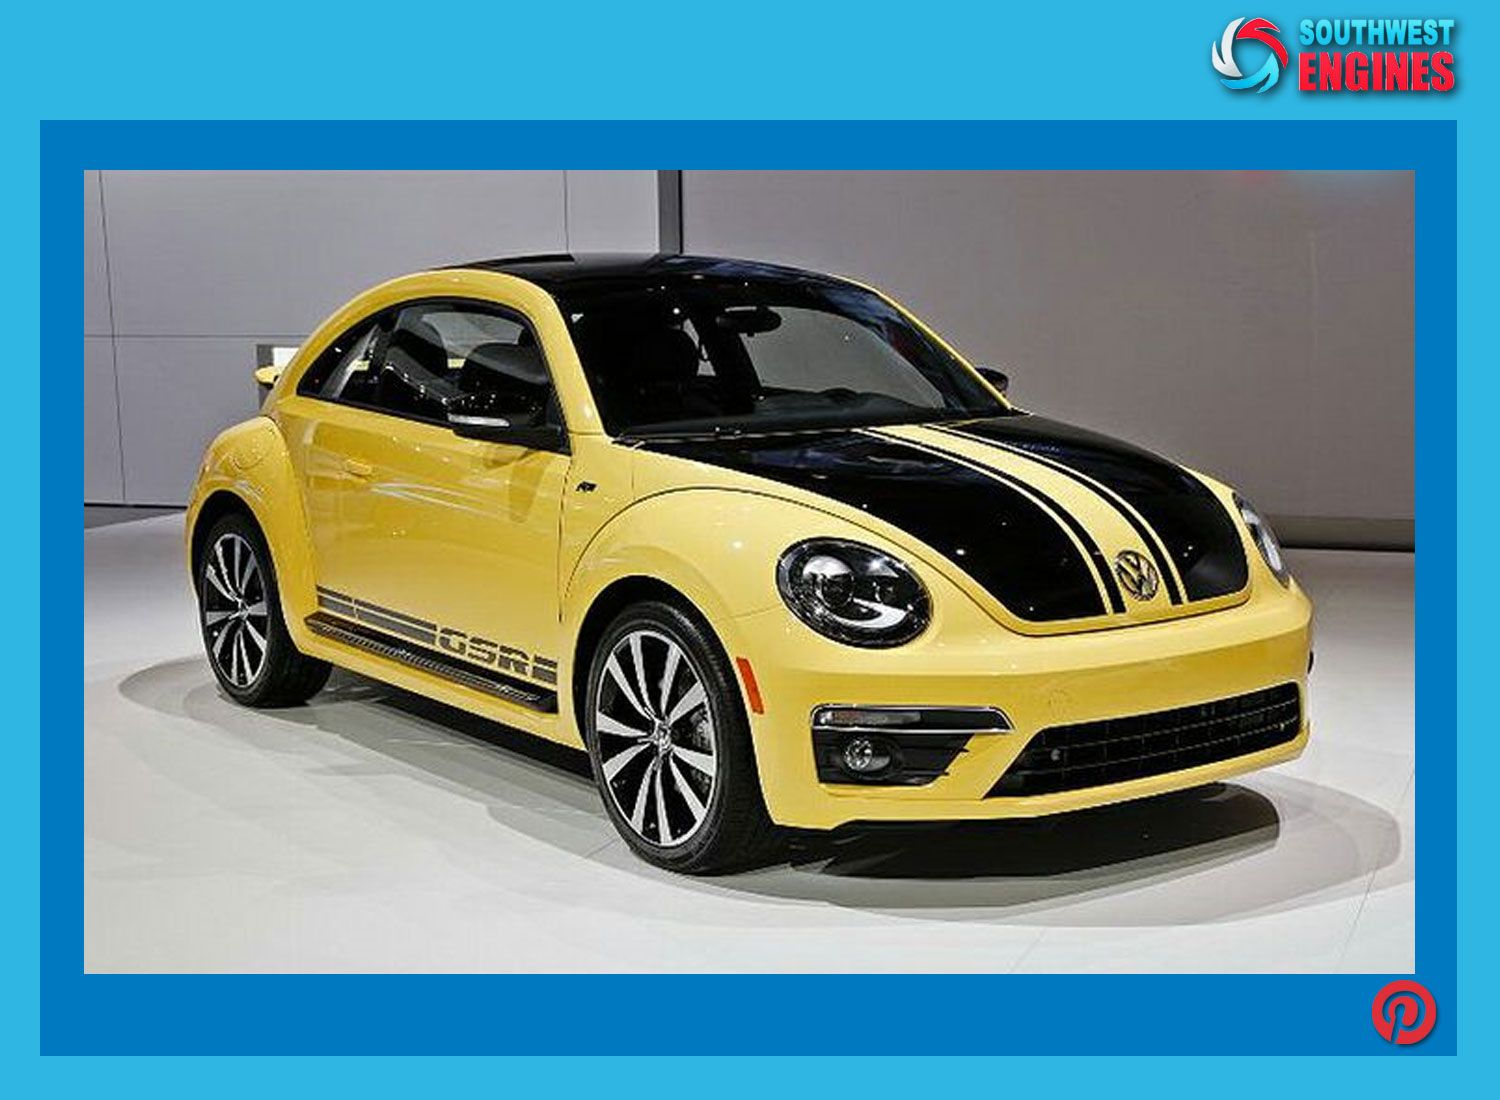 Elegant Cool Ferrari Yellow Car Picture. Getting Awesome Car Is A Fantasy For  Anyone. Most Beautiful Volkswagen Beetle ... Nice Design